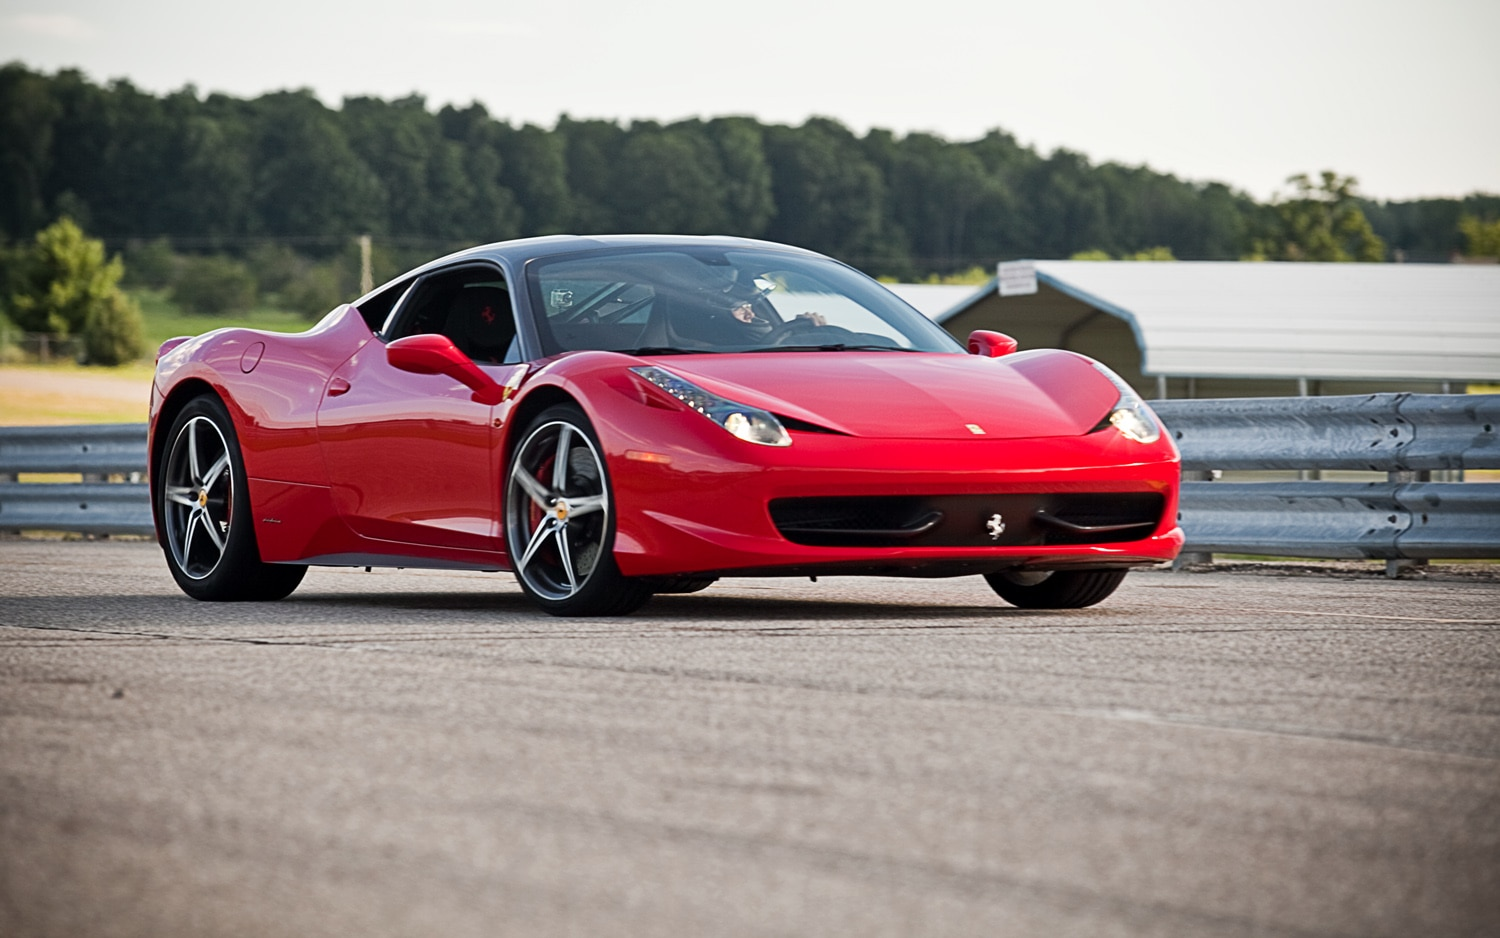 2011 ferrari 458 italia - editors' notebook - automobile magazine